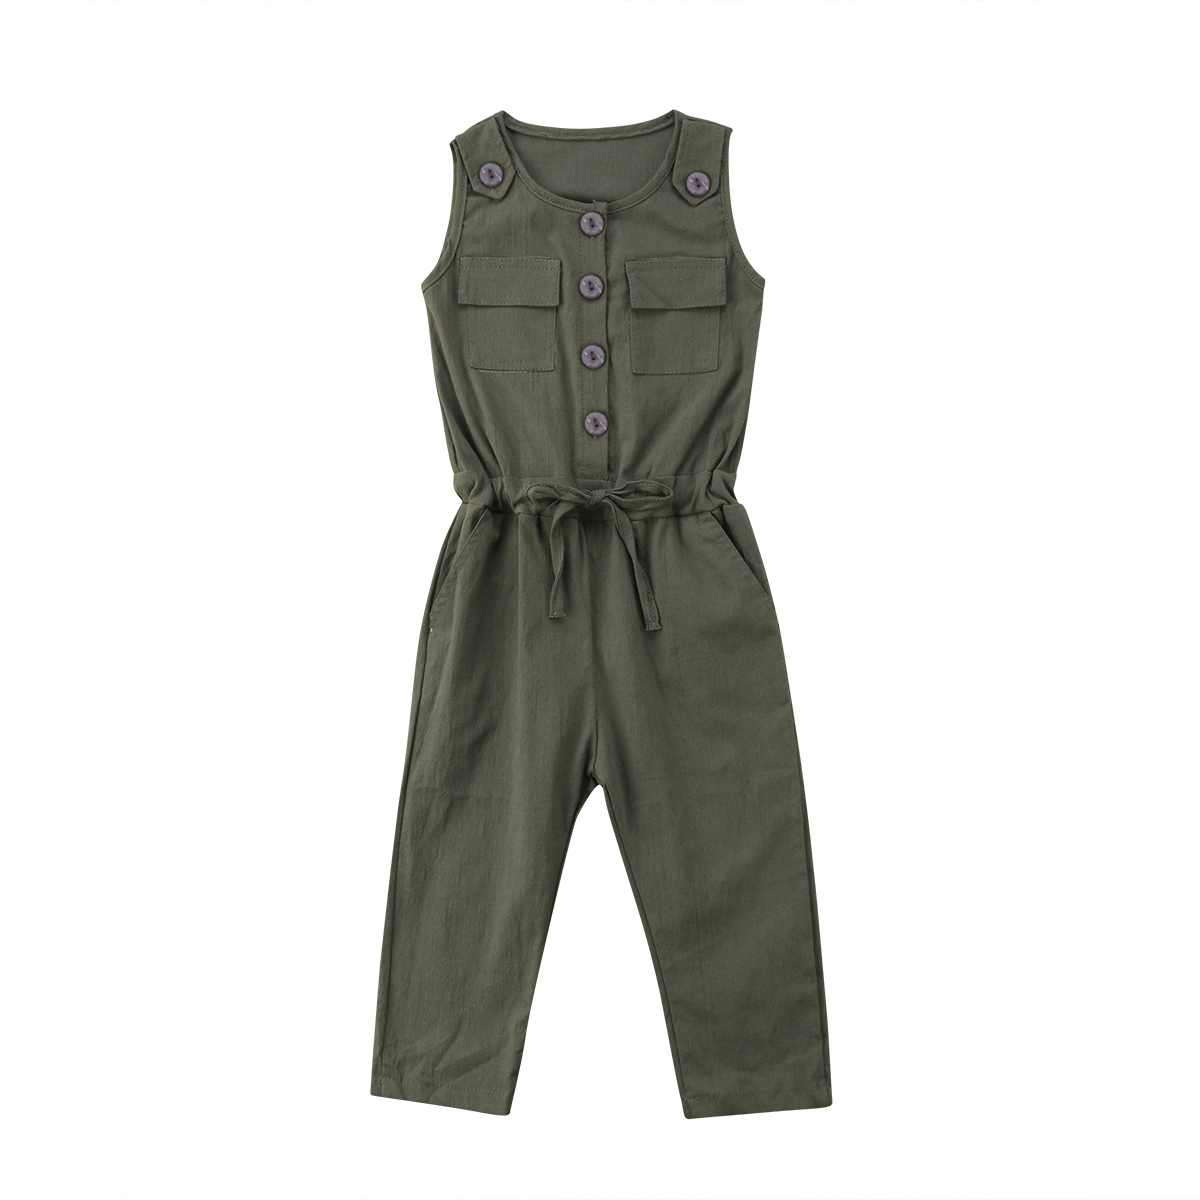 Toddler Baby Girl Sleeveless   Romper   Army Green Belt Solid Jumpsuit Outfit Sunsuit Fashion Clothes